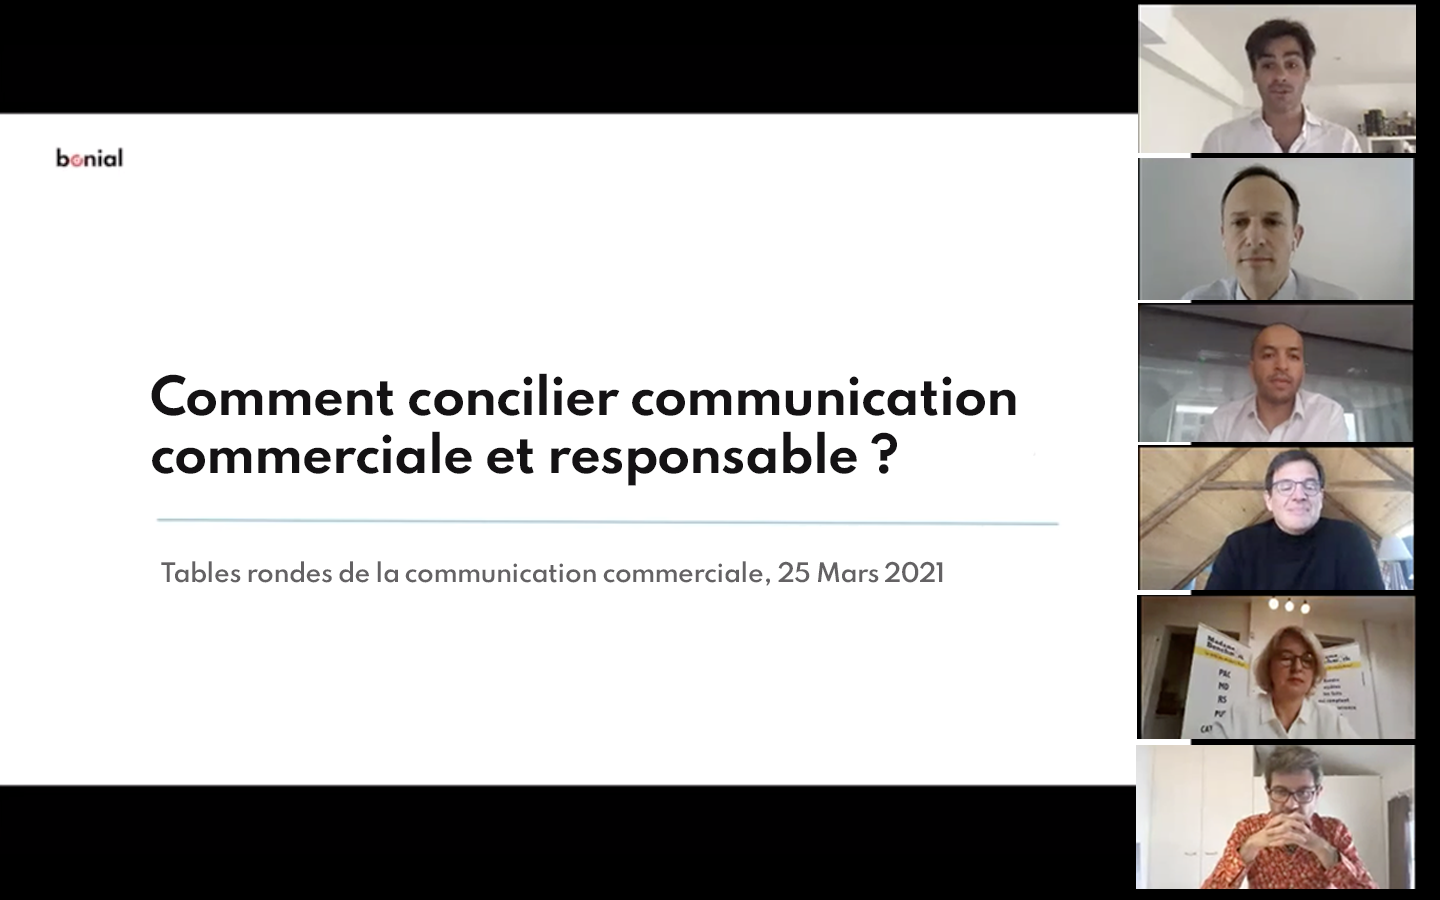 Comment concilier communication commerciale et responsable ?